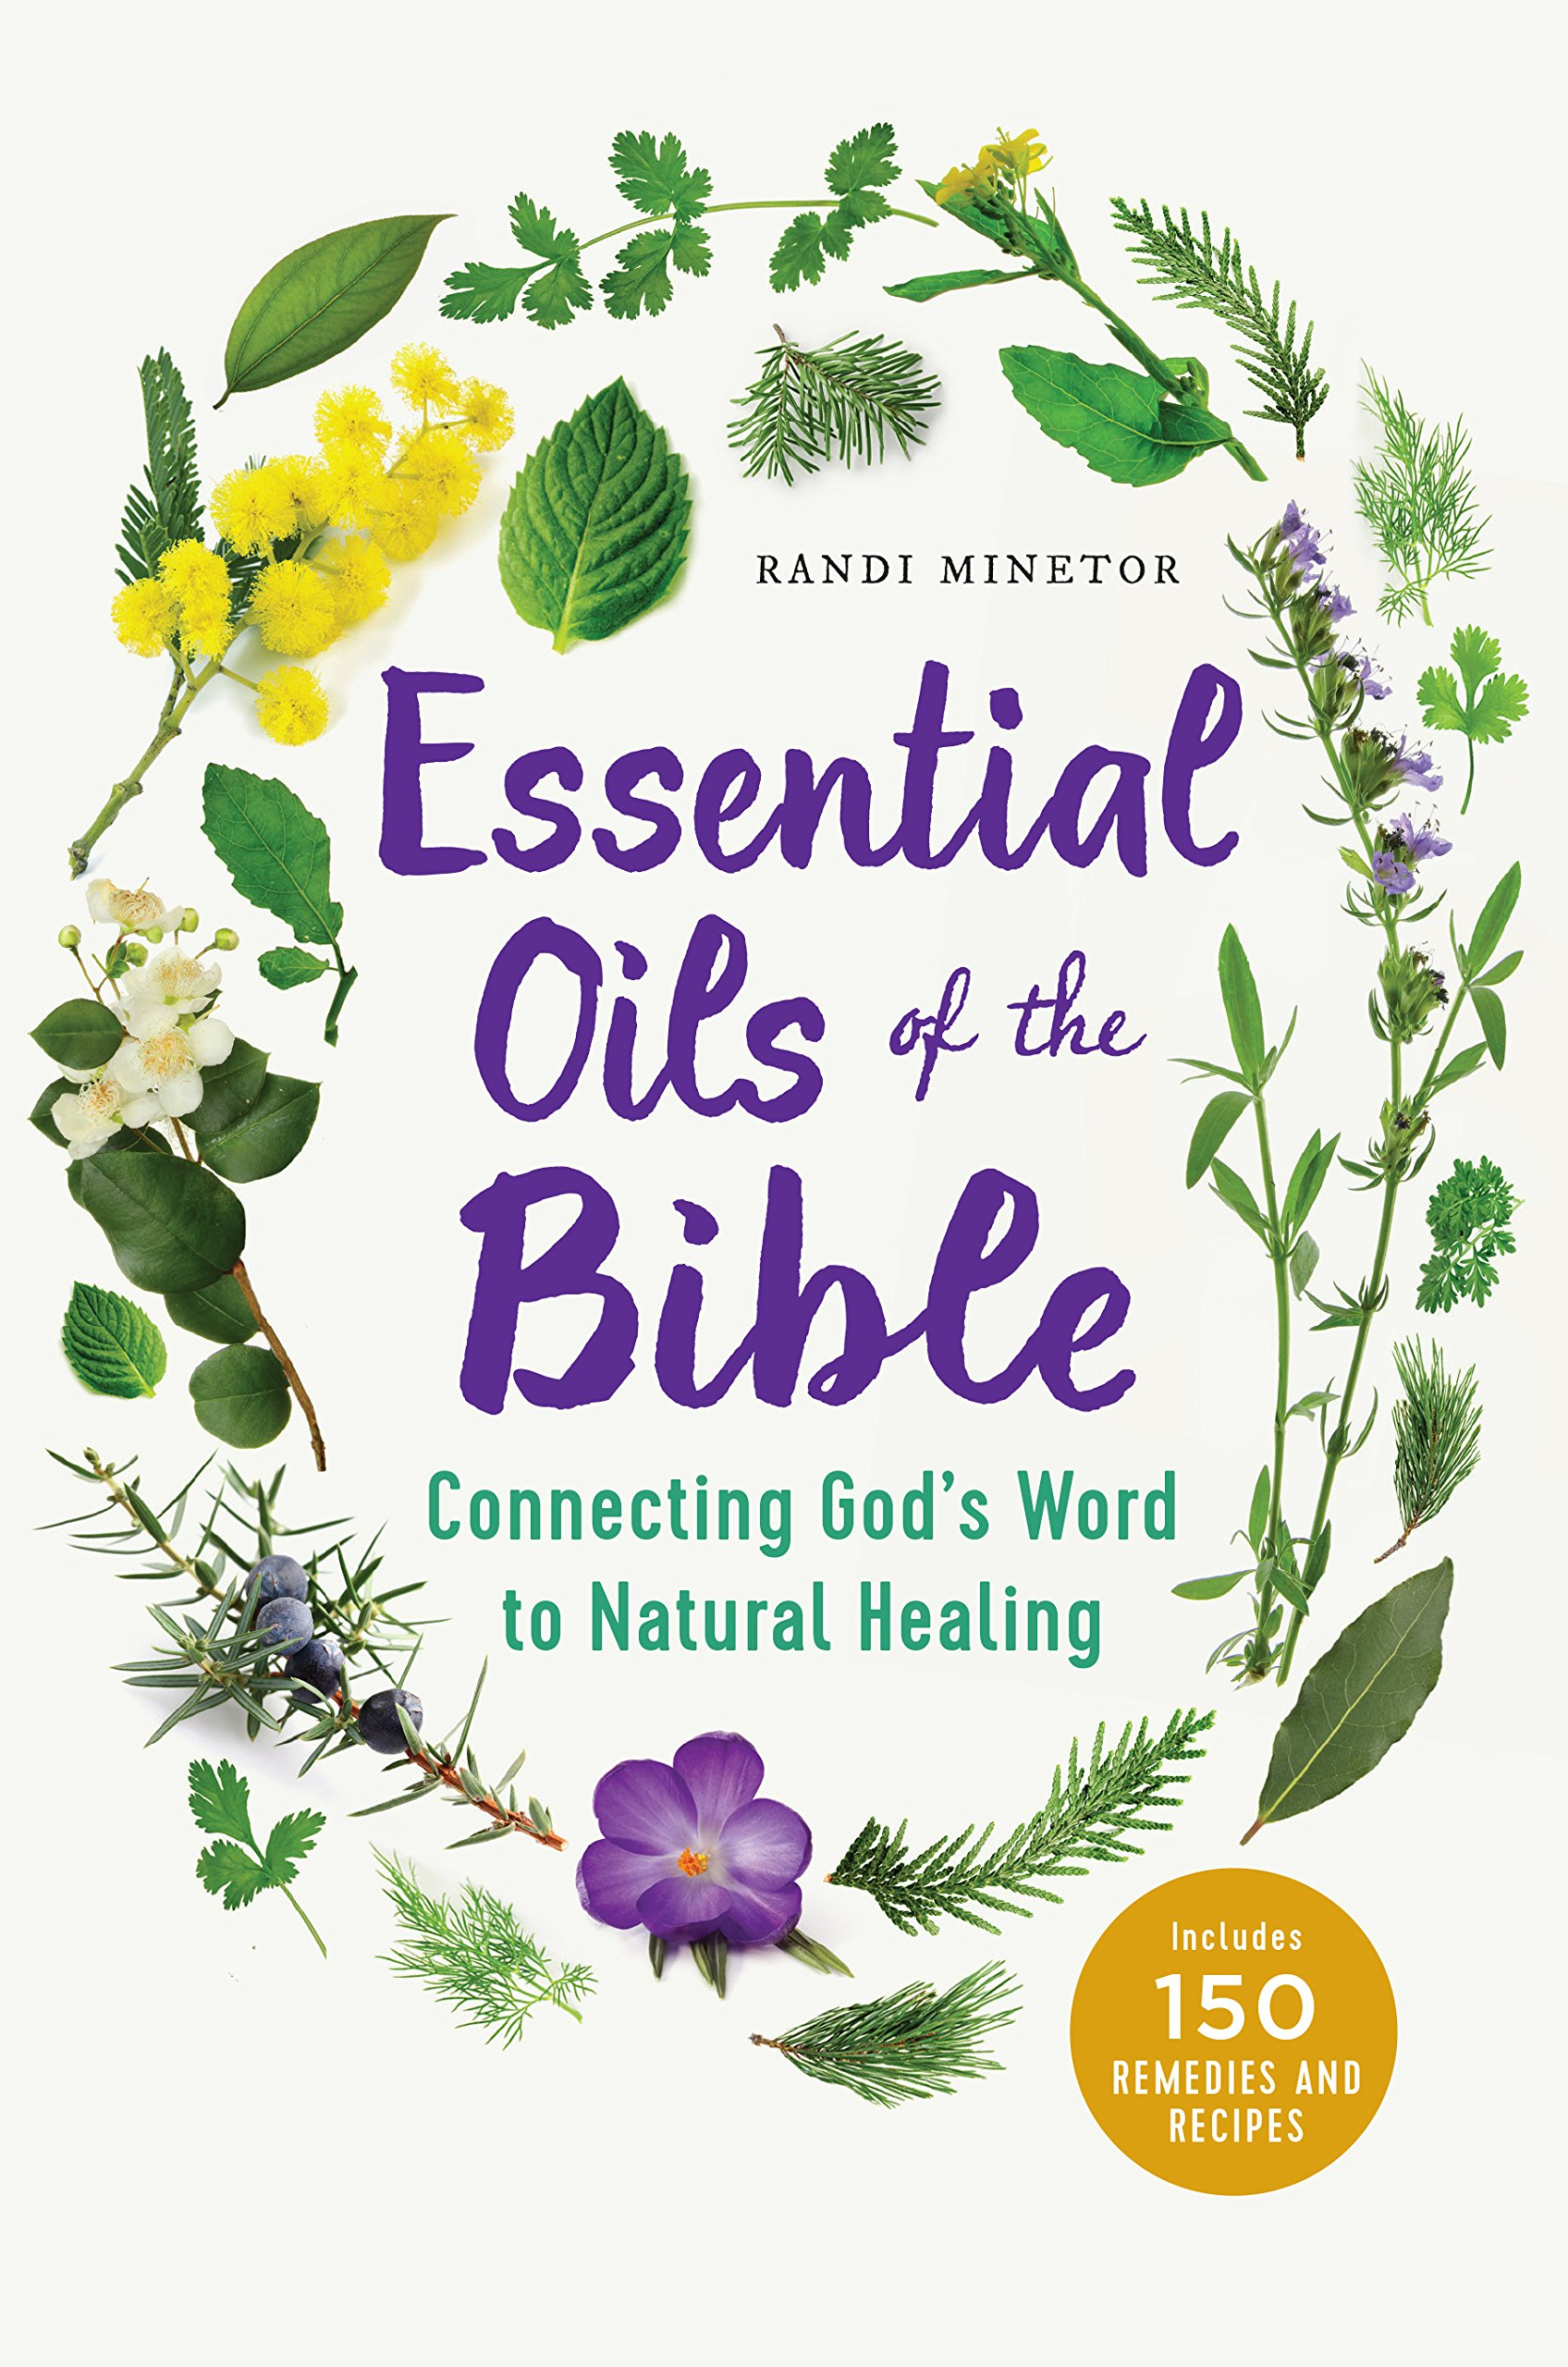 Essential oils of the Bible, connecting God's word to natural healing.